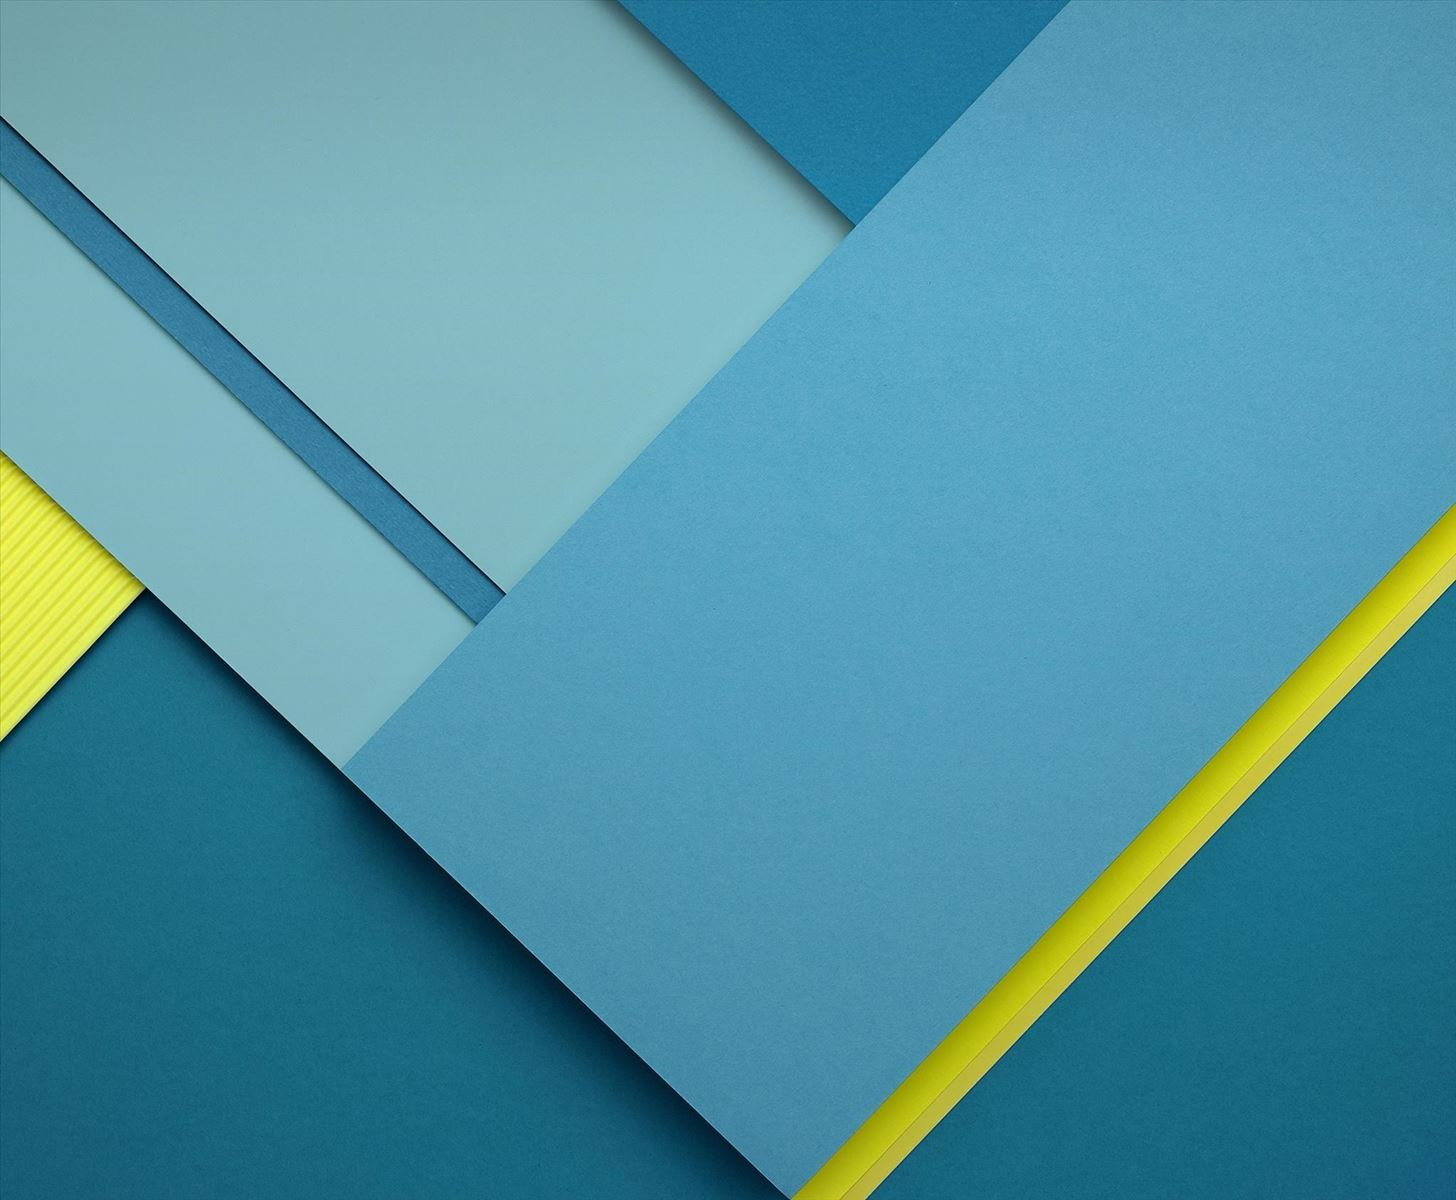 Download All the New Android Lollipop Wallpapers Right Now